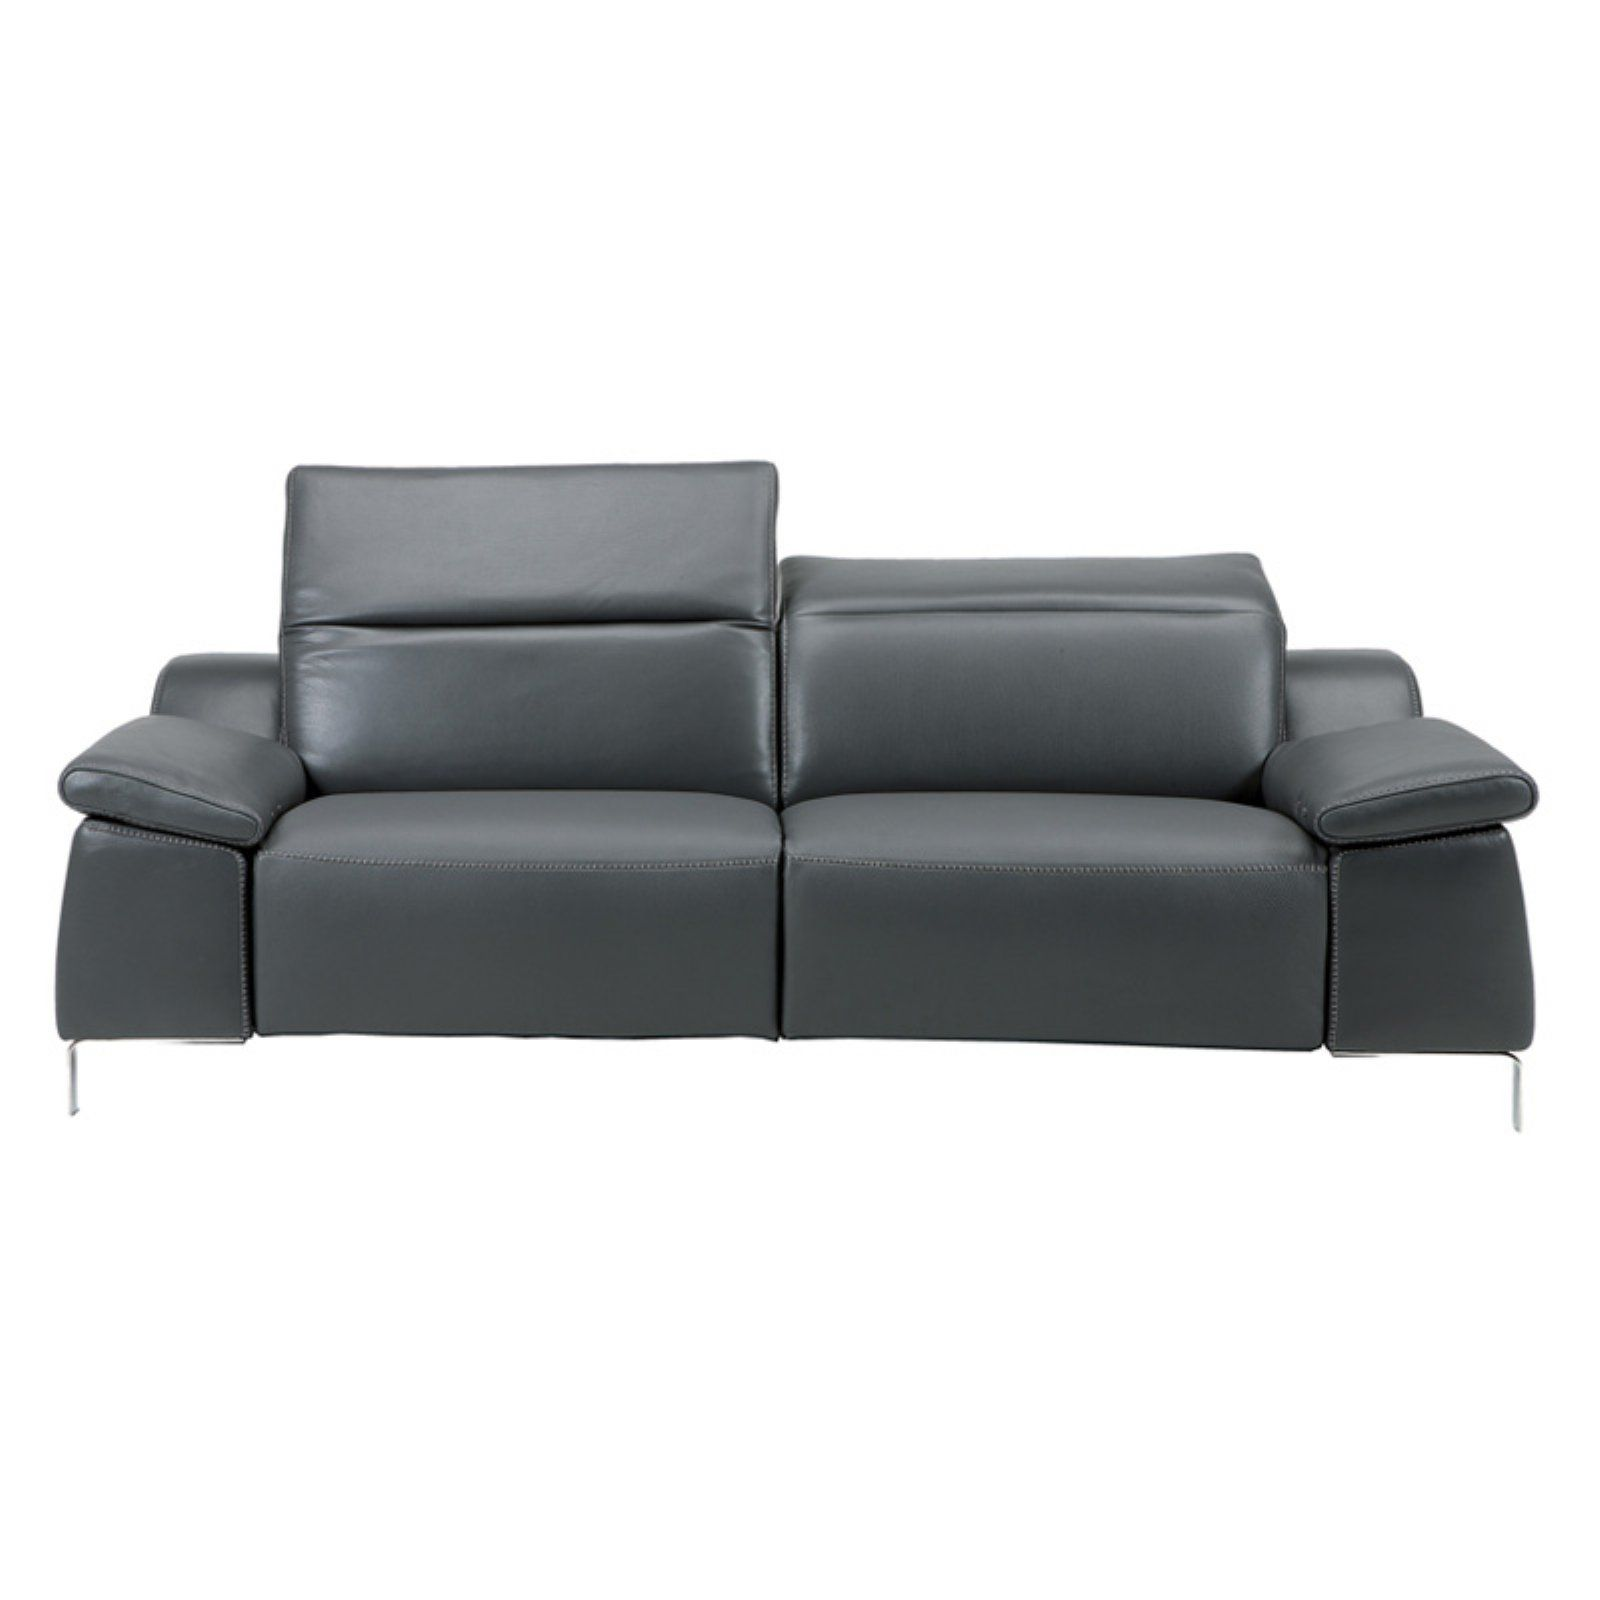 Wondrous Bellini Modern Living Sofia Electric Motion Loveseat With Beatyapartments Chair Design Images Beatyapartmentscom